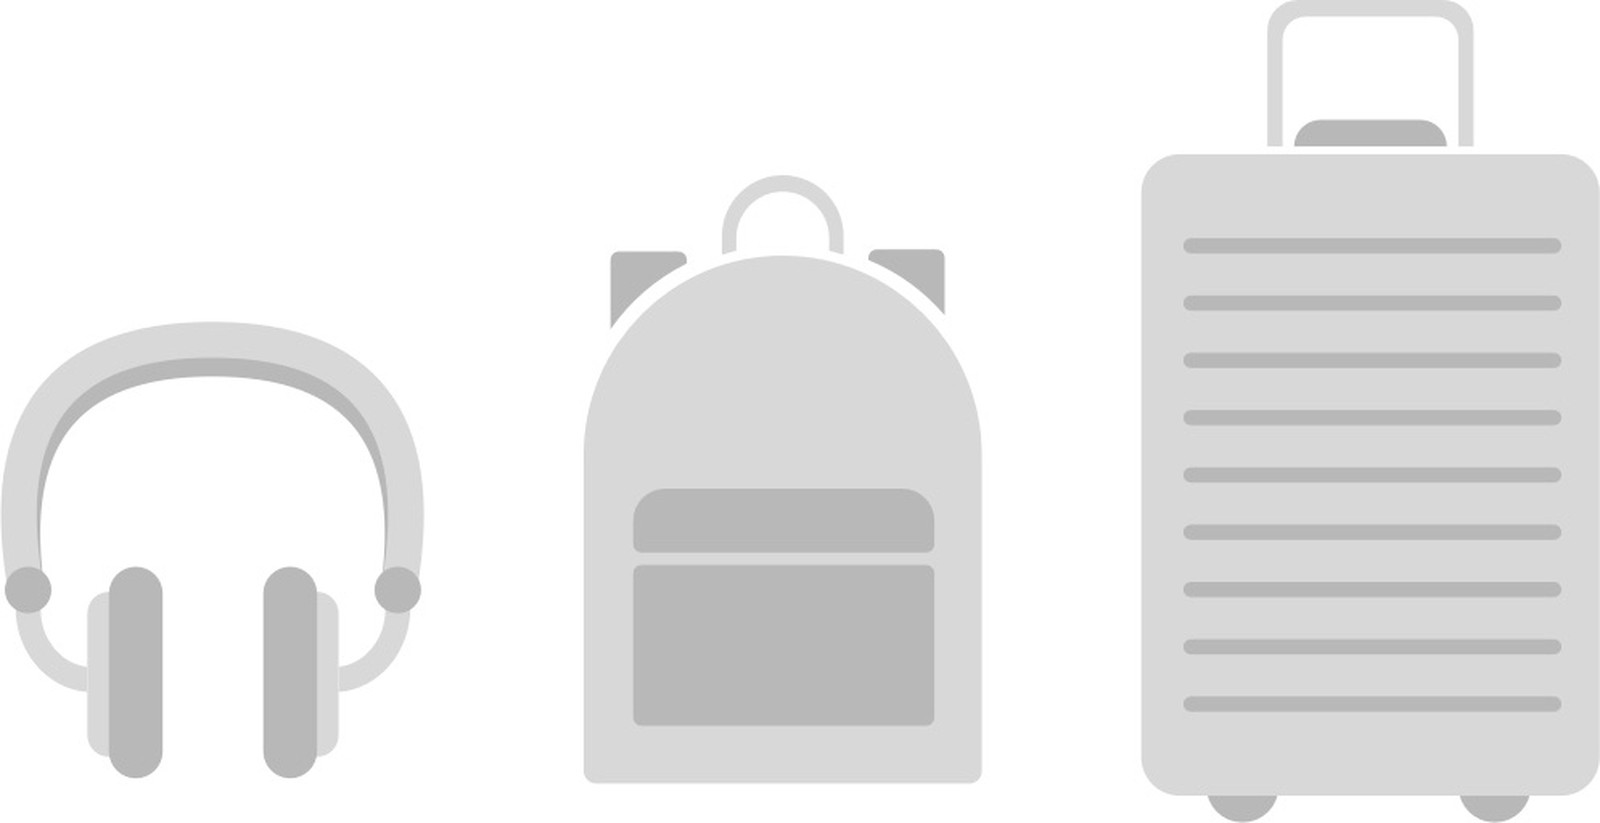 ios-14-3-headphones-icon-luggage.jpg